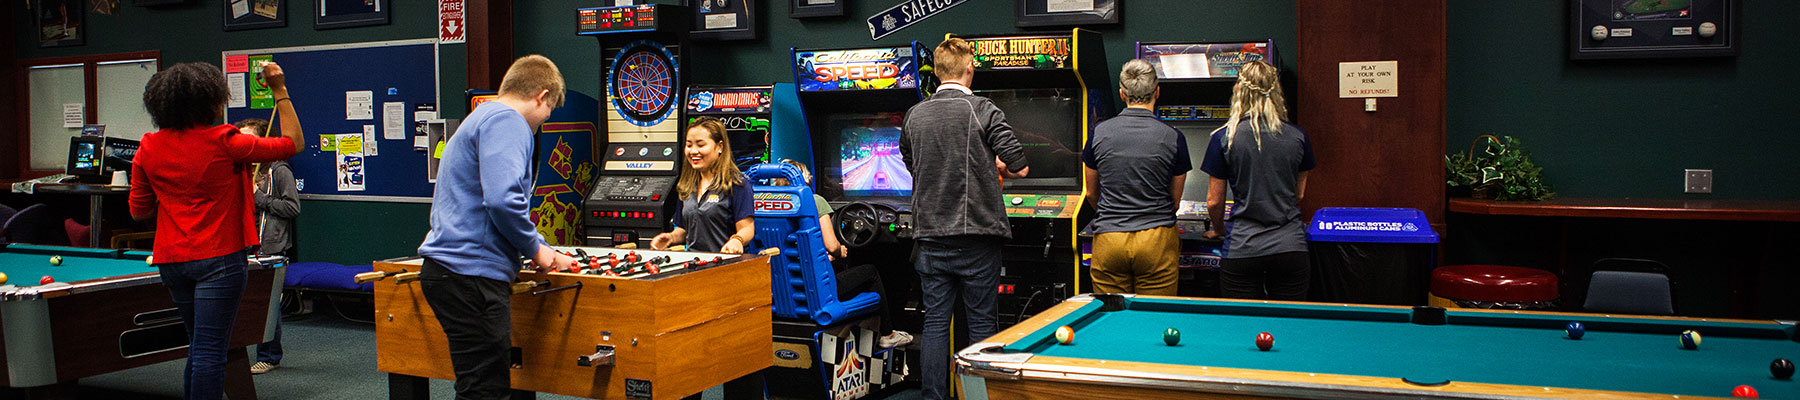 Students playing games in the recreation center at SFCC.